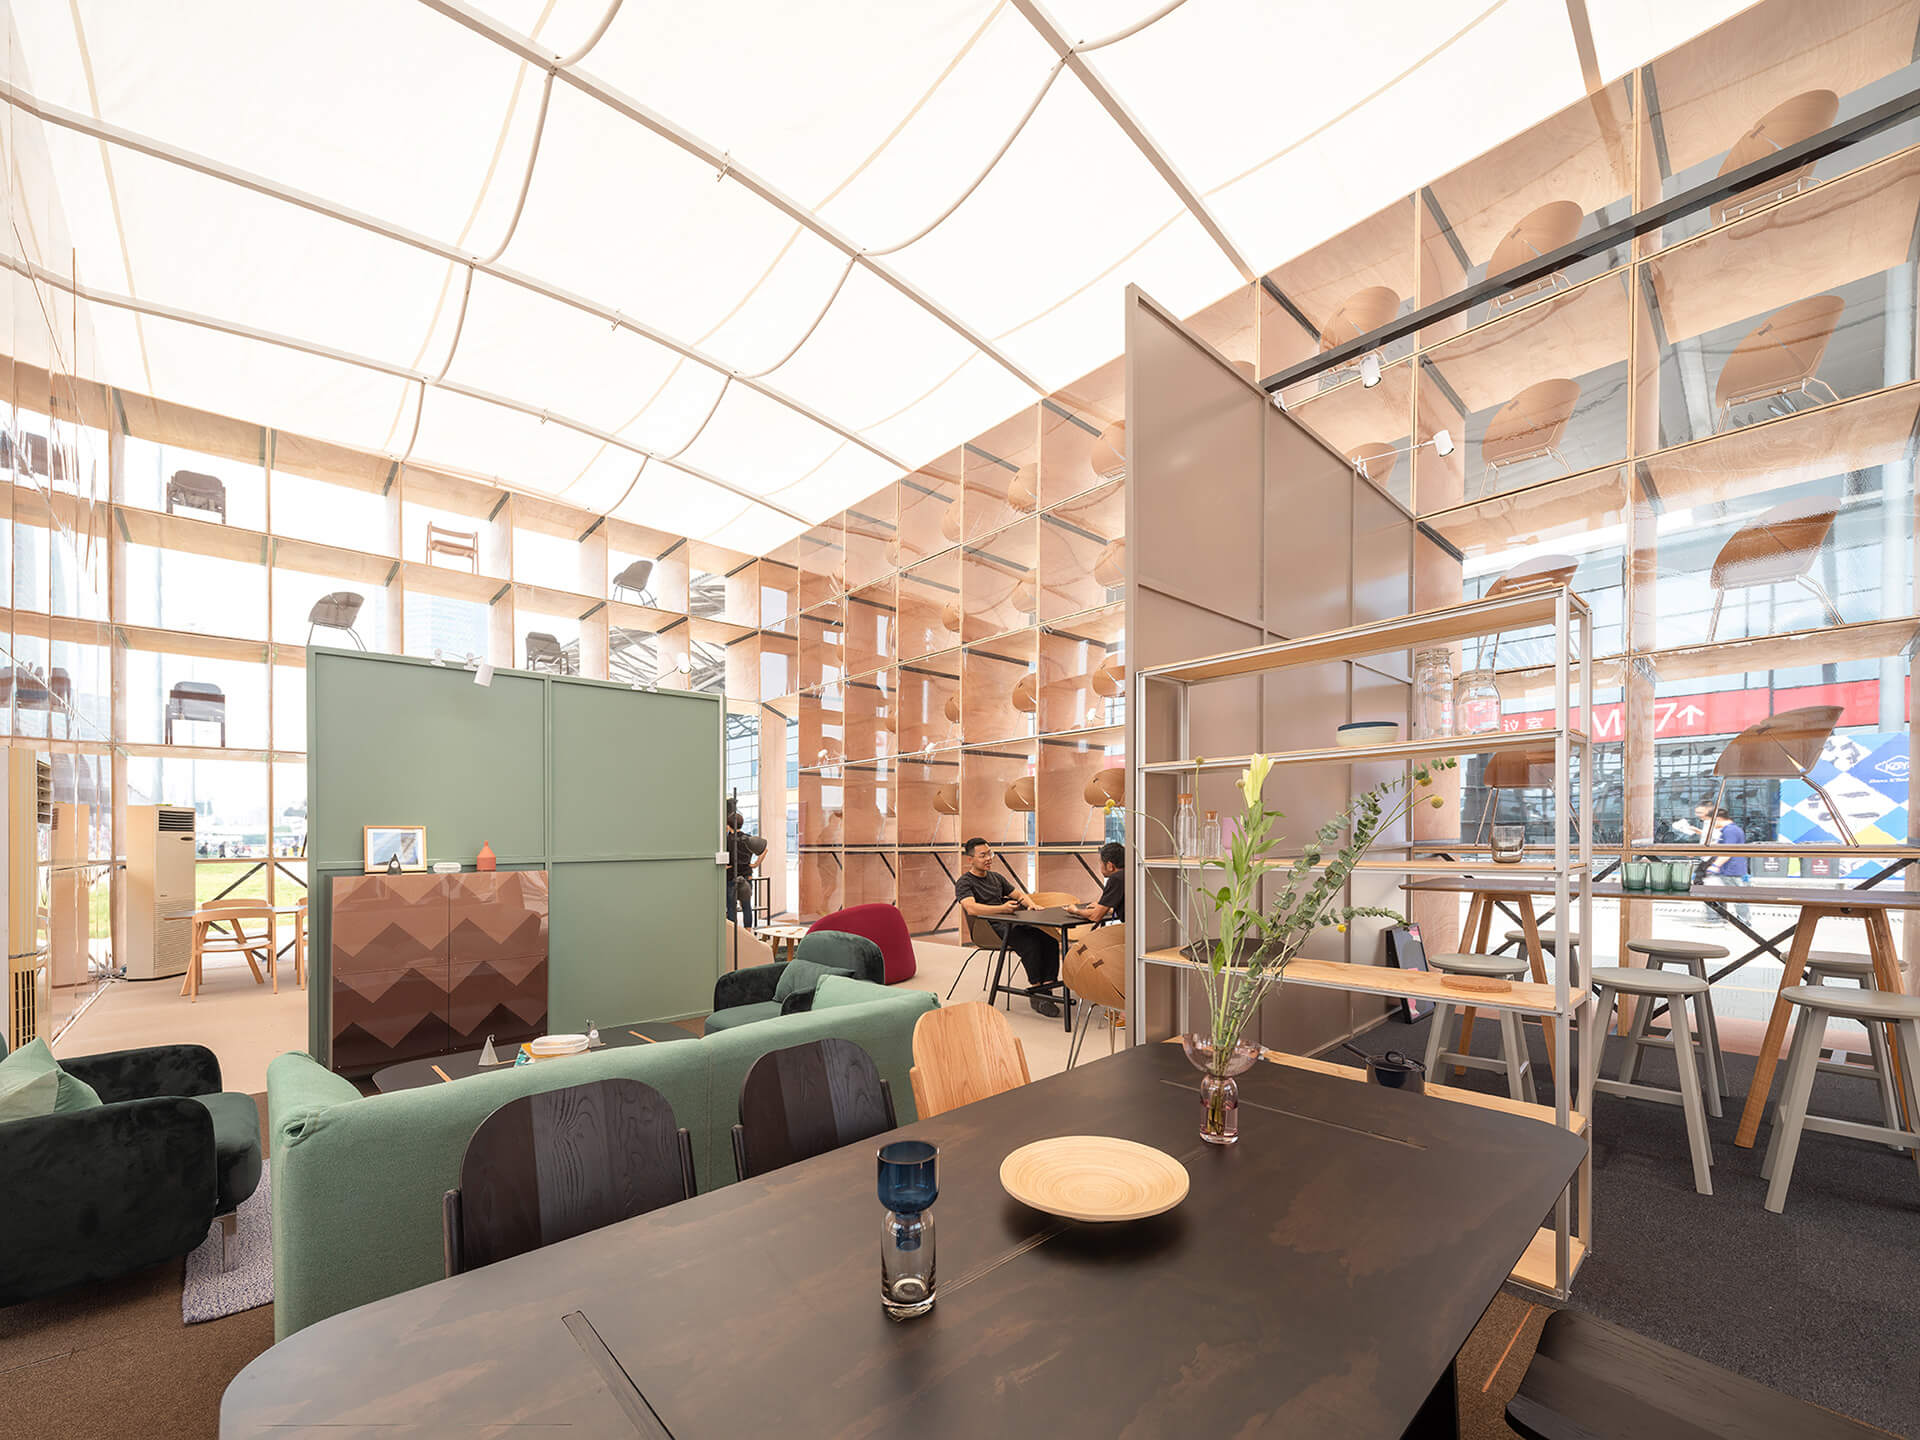 The interior space allows visitors to unwind and enjoy the exhibit | Pavilion S | Rooi Design and Research | STIRworld